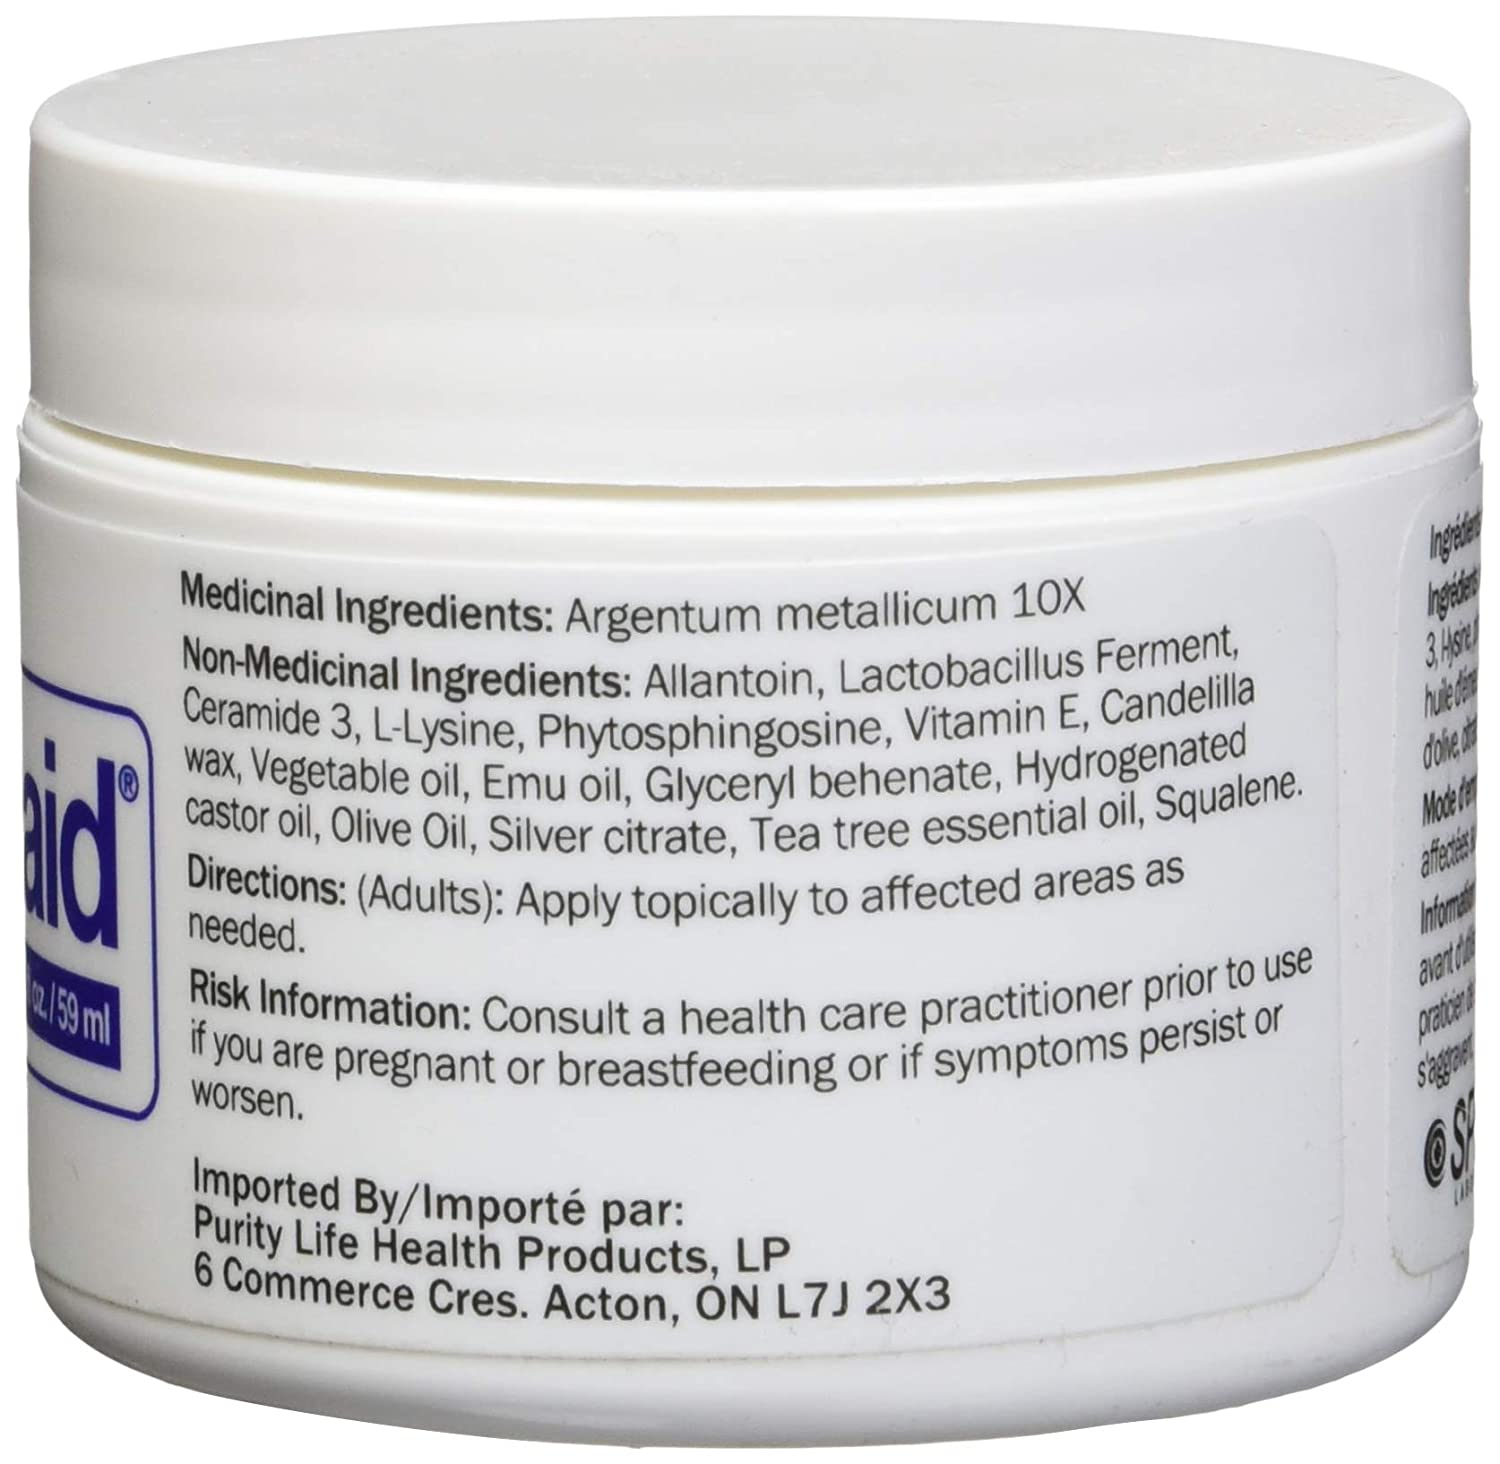 Emuaid- Natural Pain Relief, Anti-Inflammatory Therapy, 2oz: Amazon.es: Belleza